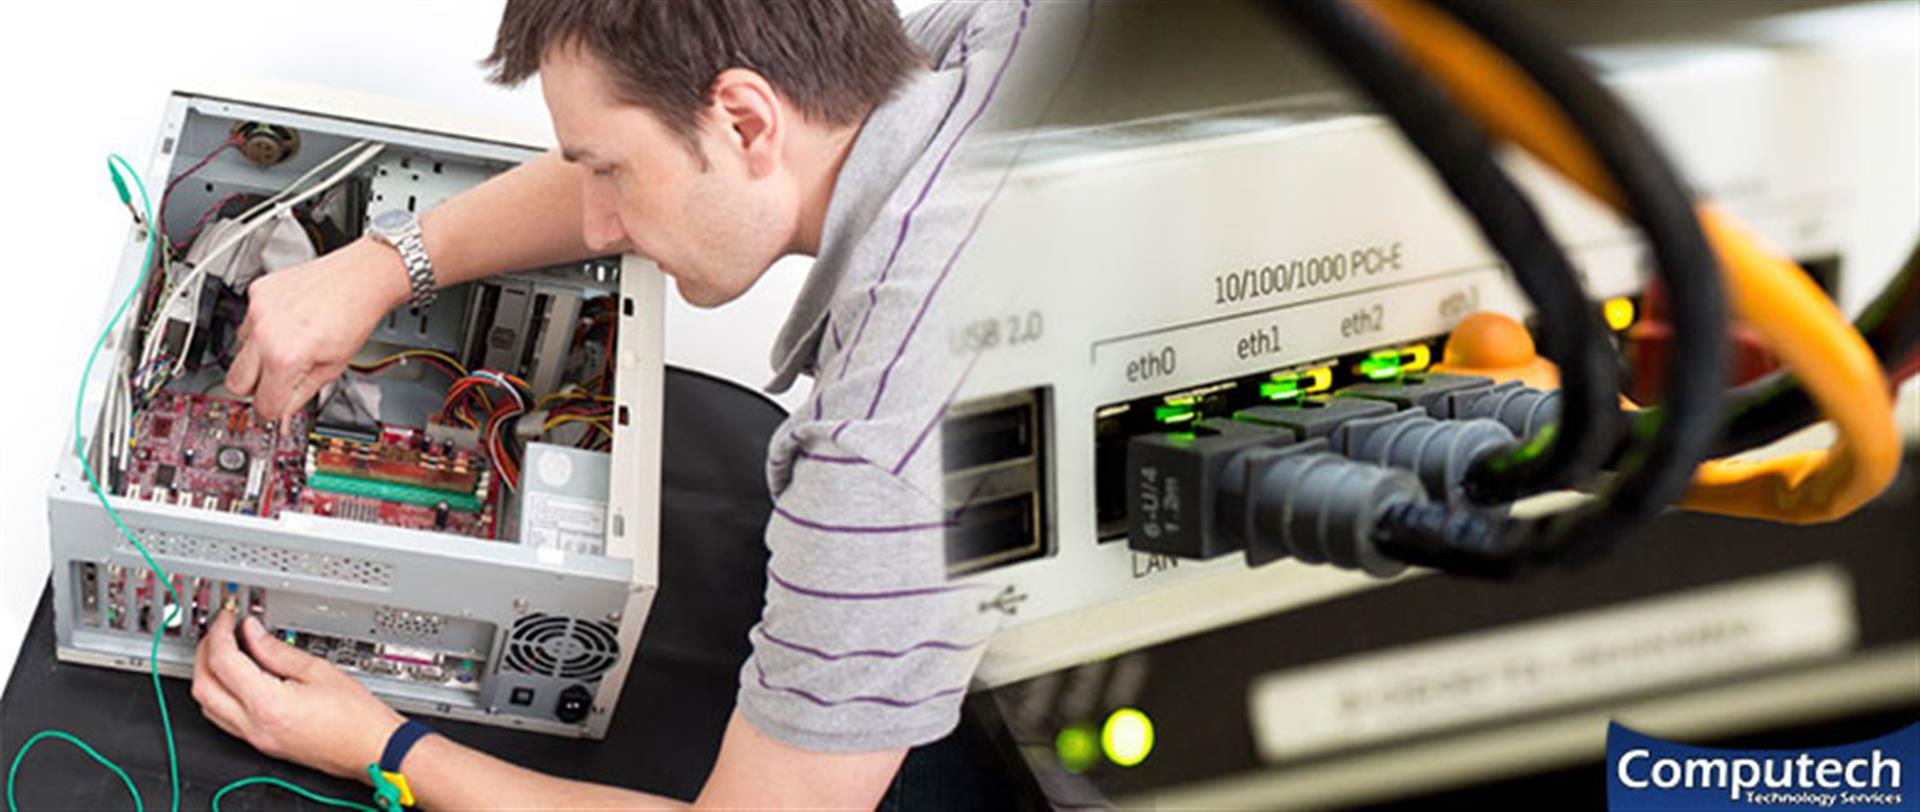 Oneonta Alabama Onsite Computer PC & Printer Repairs, Networking, Telecom & Data Inside Wiring Services